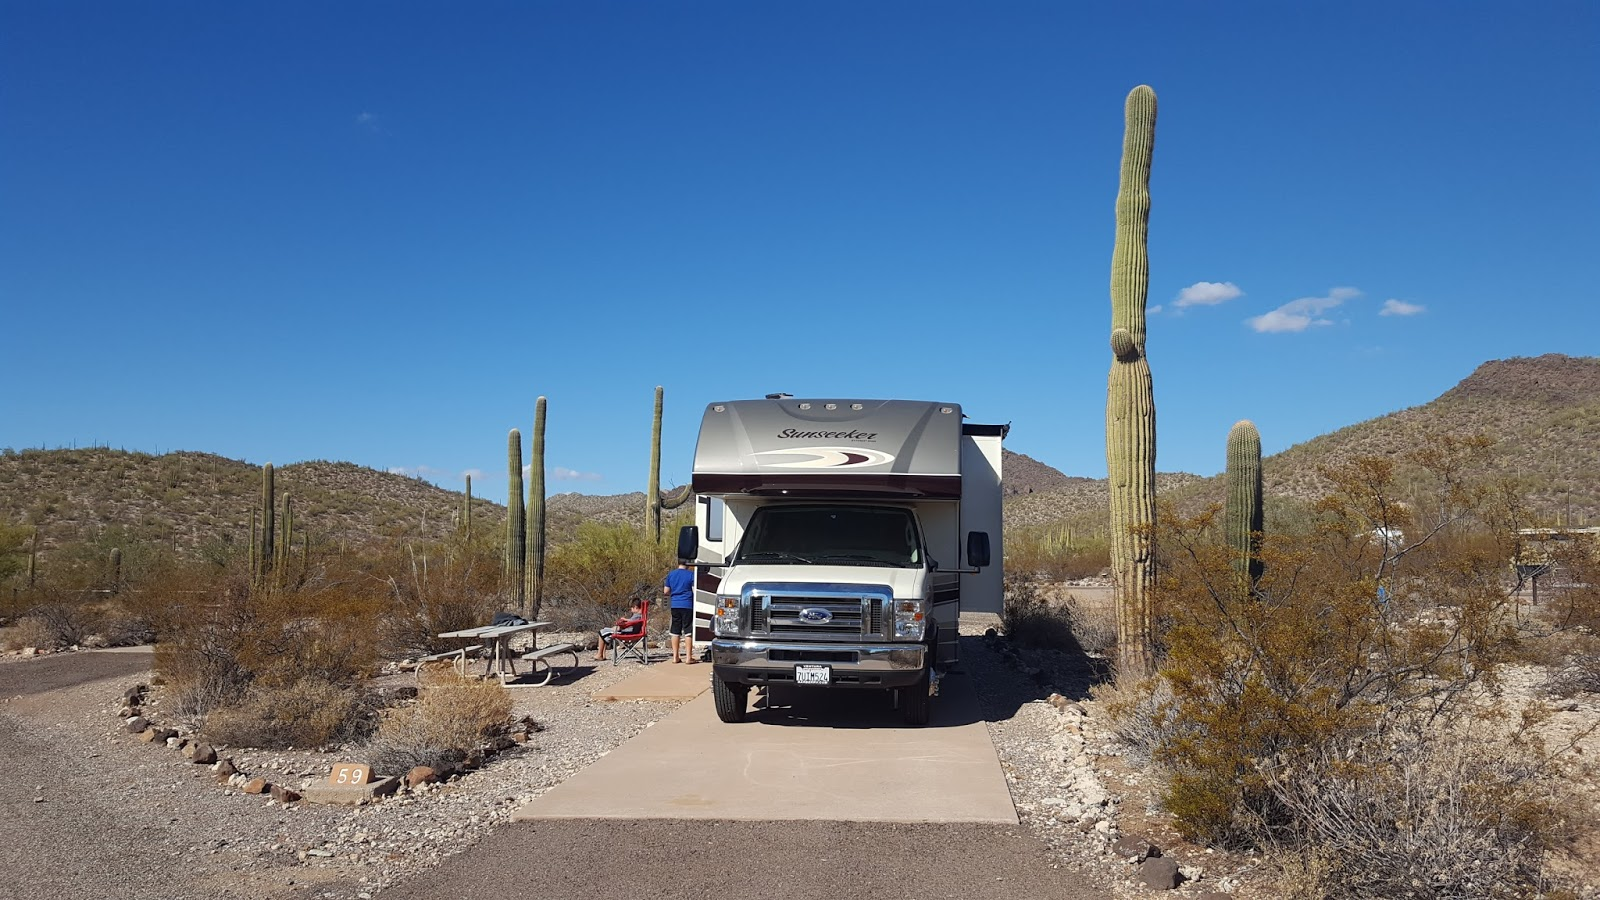 Campgroundcrazy early to mid spring is the best time of year to visit organ pipe cactus national monument because of the blooming desert species publicscrutiny Image collections